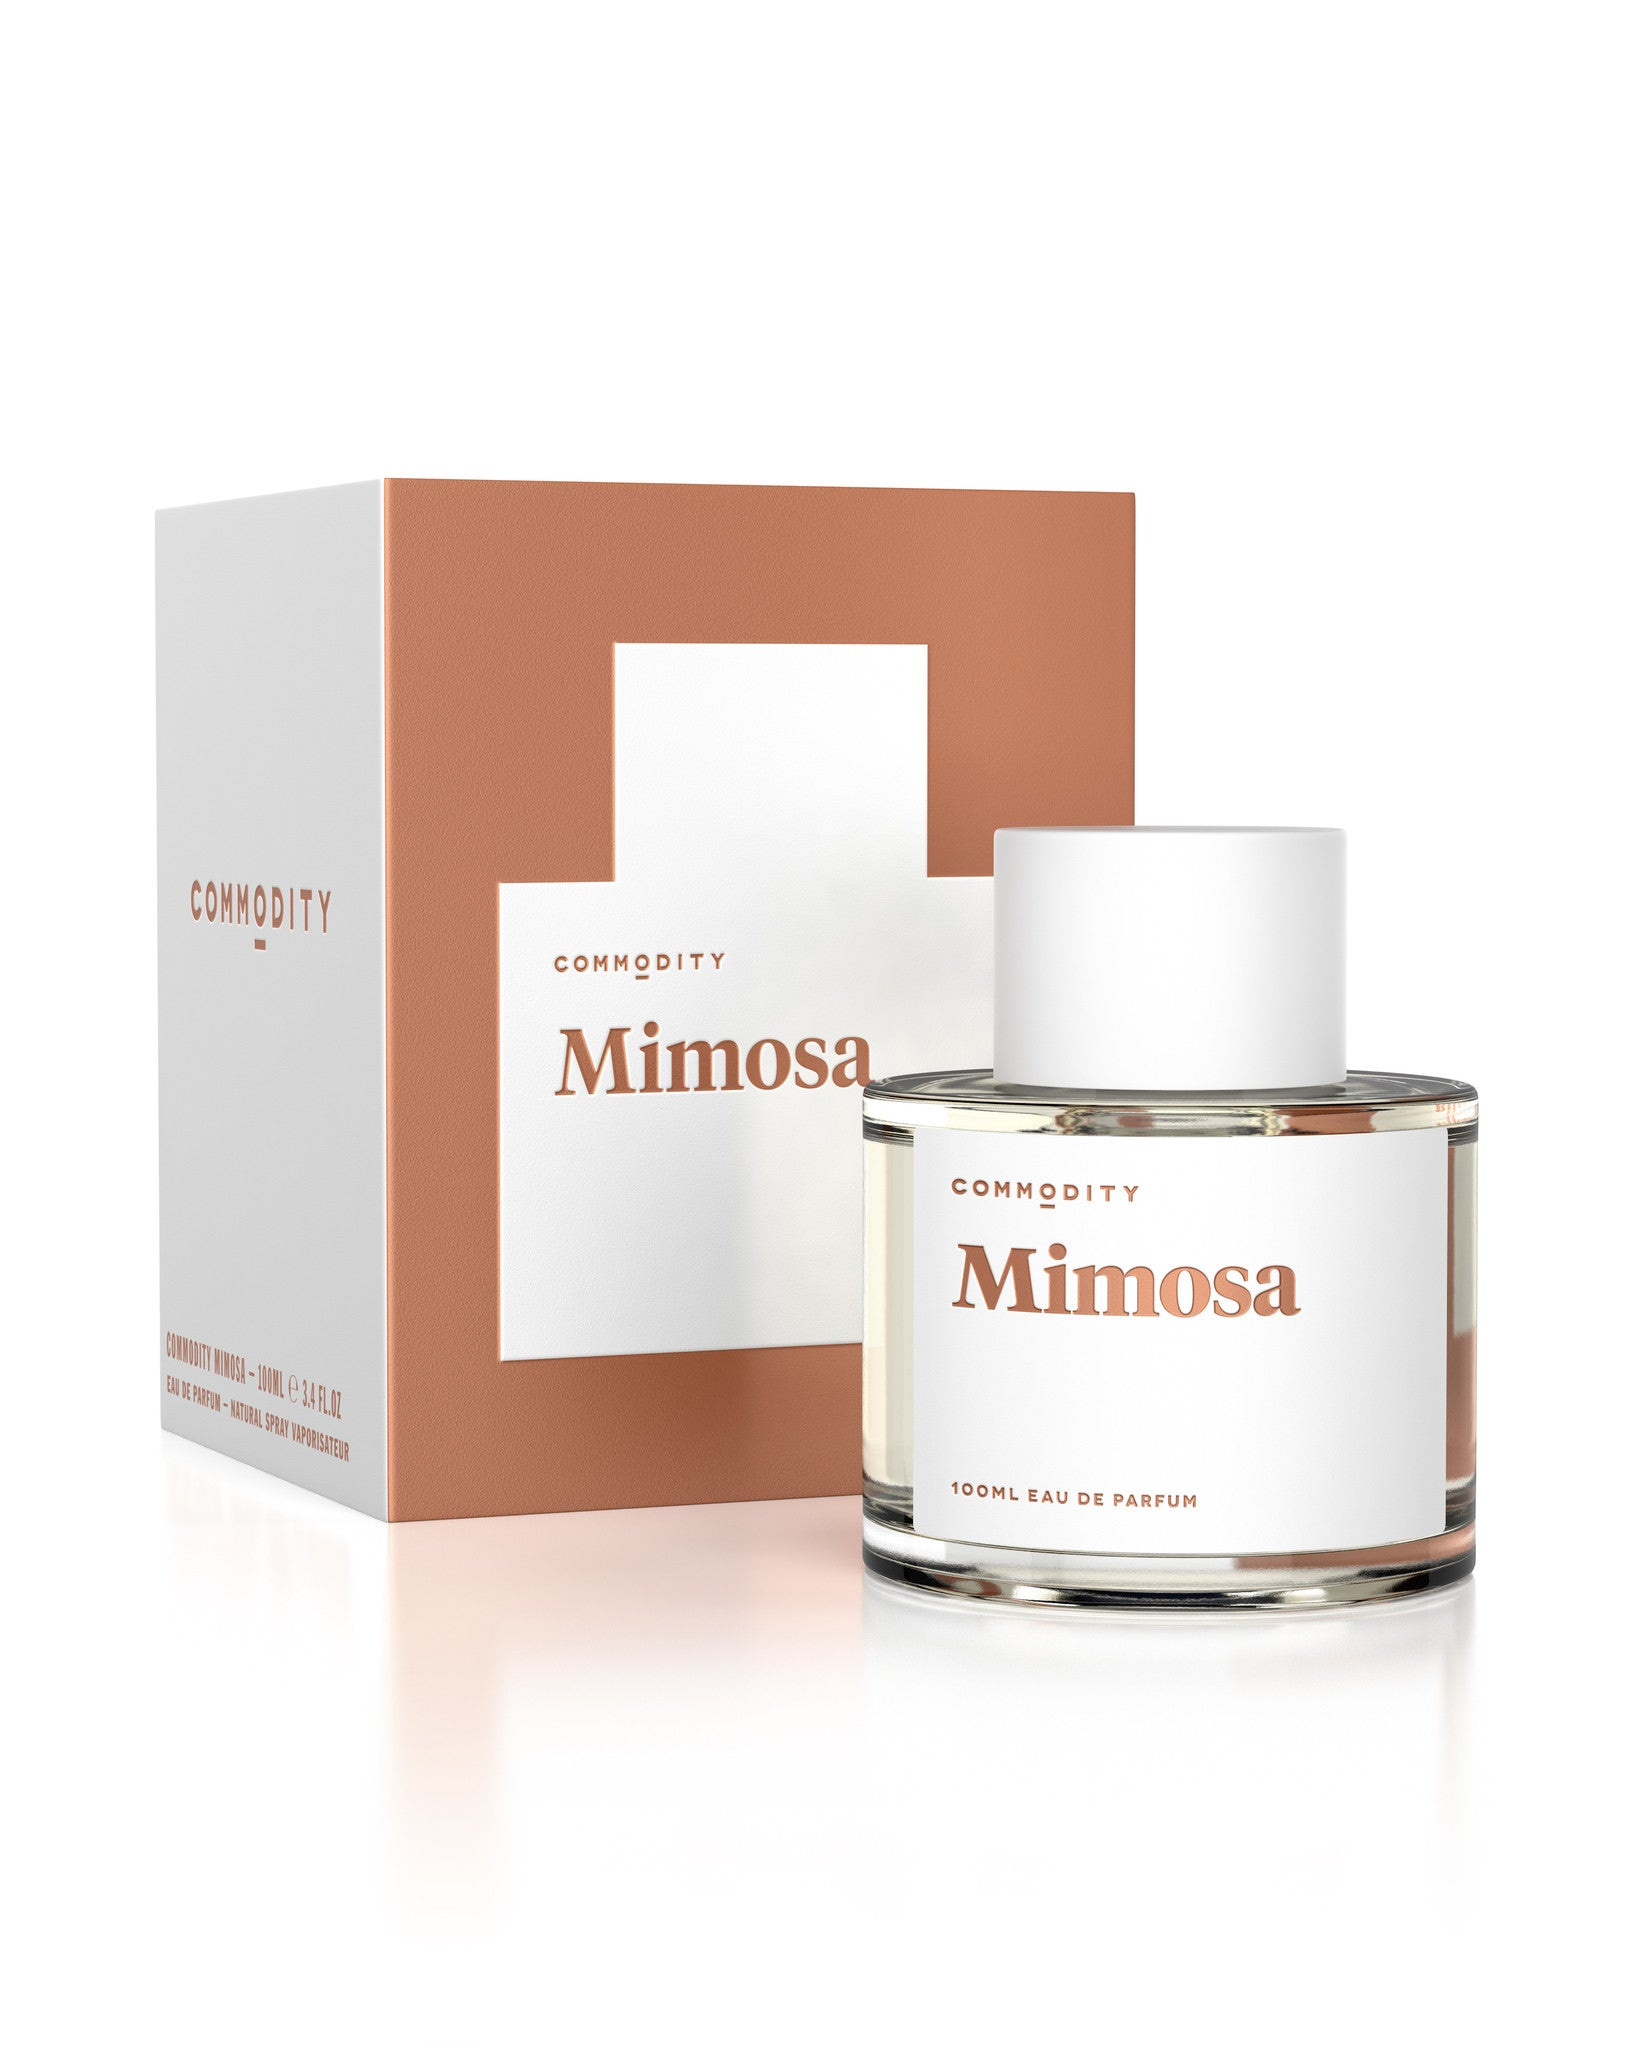 Commodity Mimosa 100ml EDP